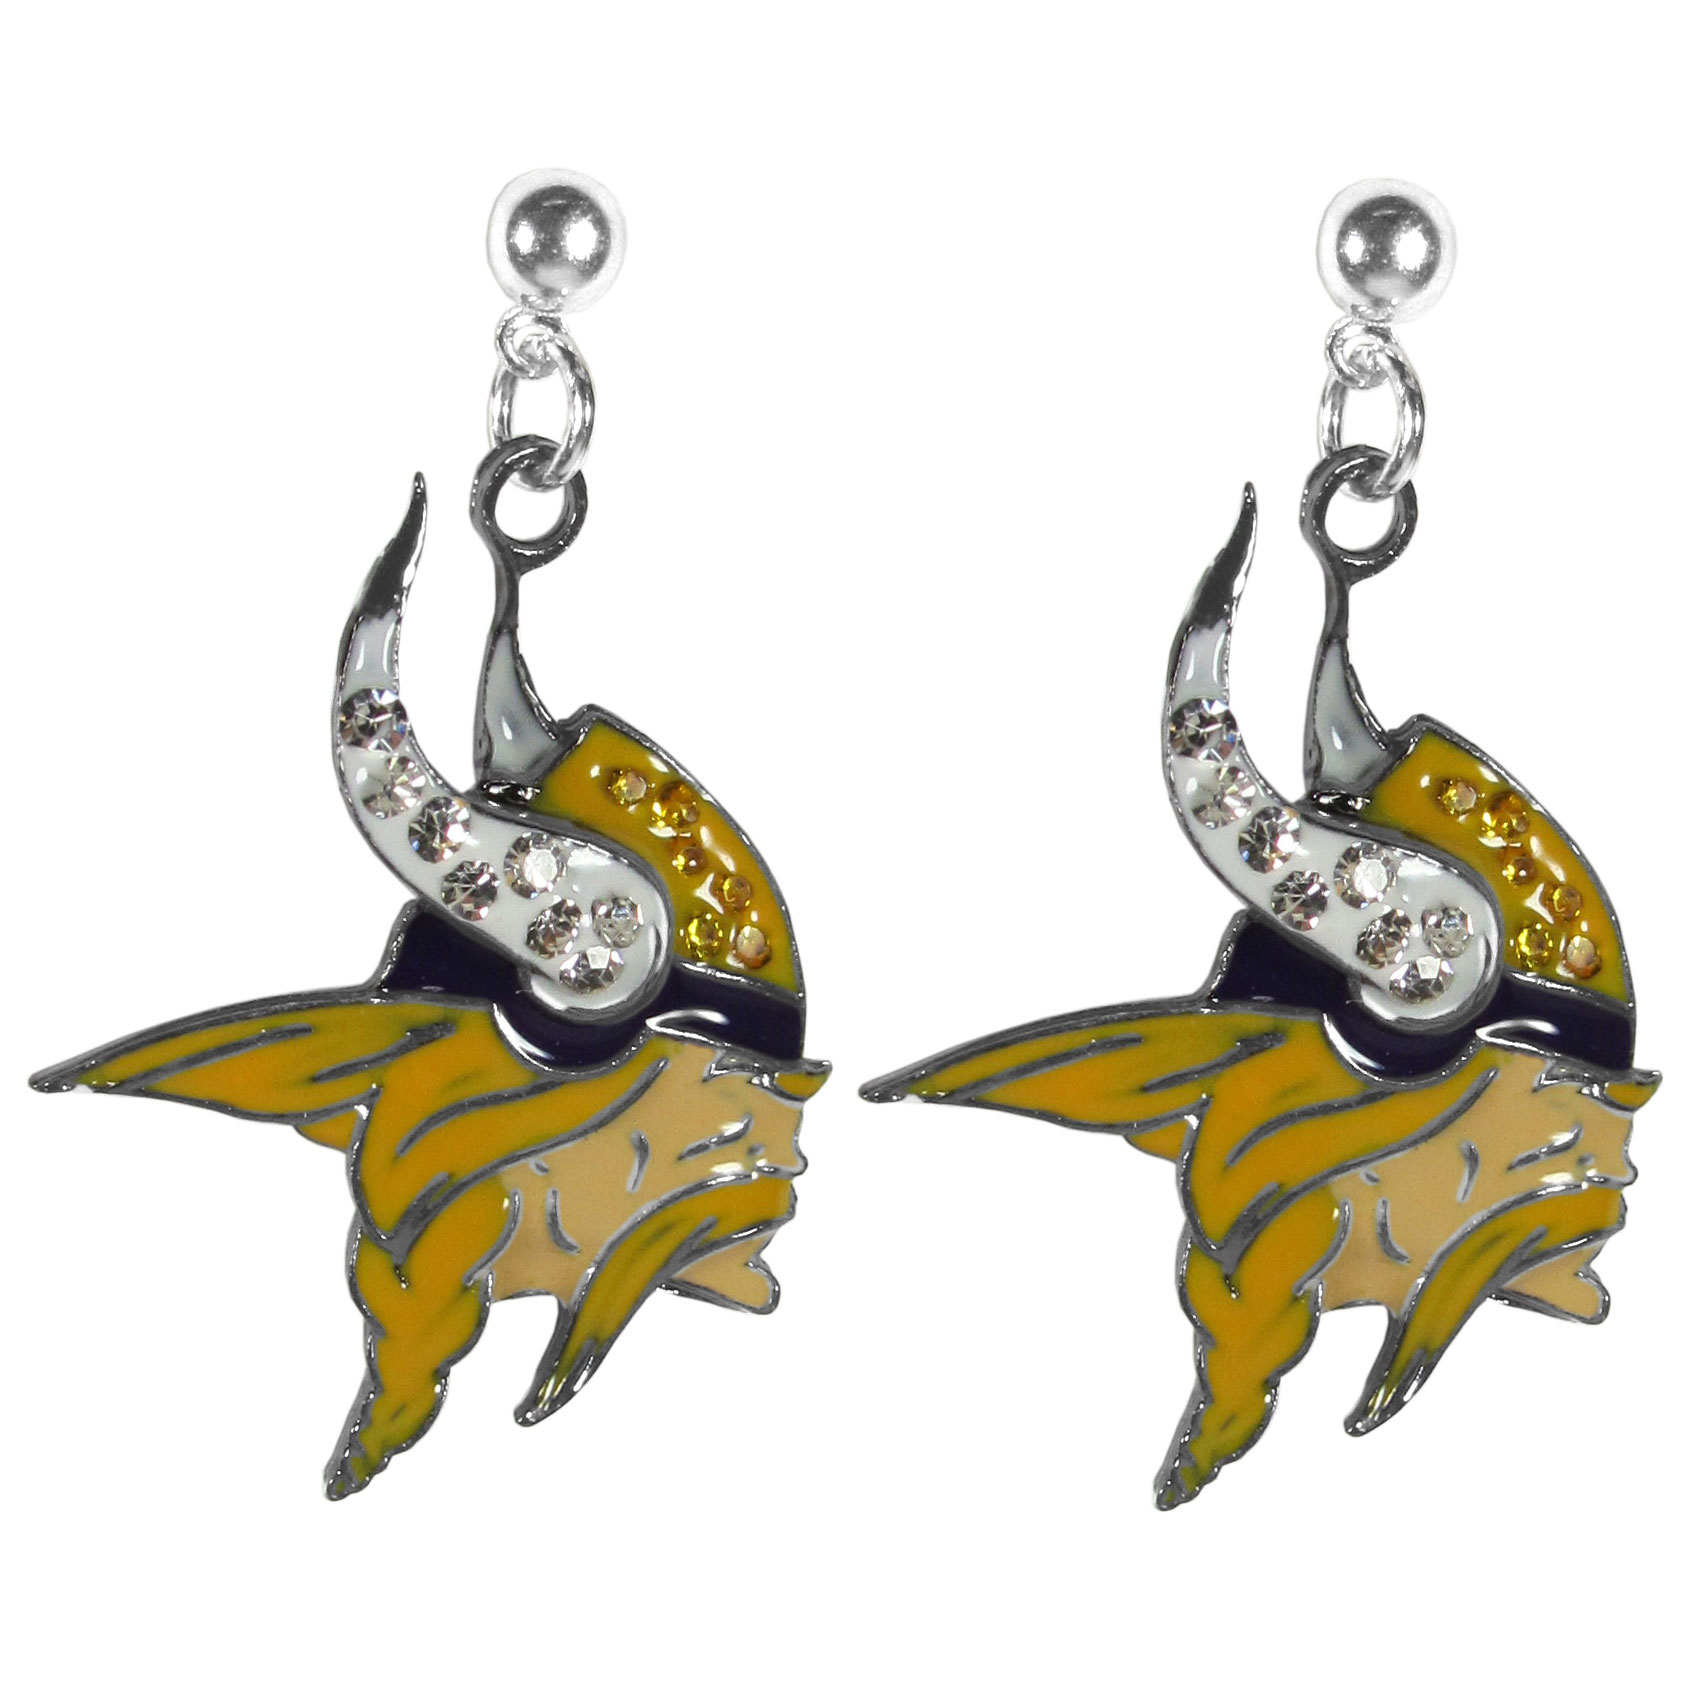 Minnesota Vikings Crystal Stud Earrings - These sporty stud earrings have beautiful crystal enlaided Minnesota Vikings charms that hang from the stud posts so that you have the best of both the dangle earring style with the comfort of the secure stud posts. The trendy charms are silver plated with colorful detail and are absolutely covered in team colored charms. The classy earrings feature hypo-allergenic posts.